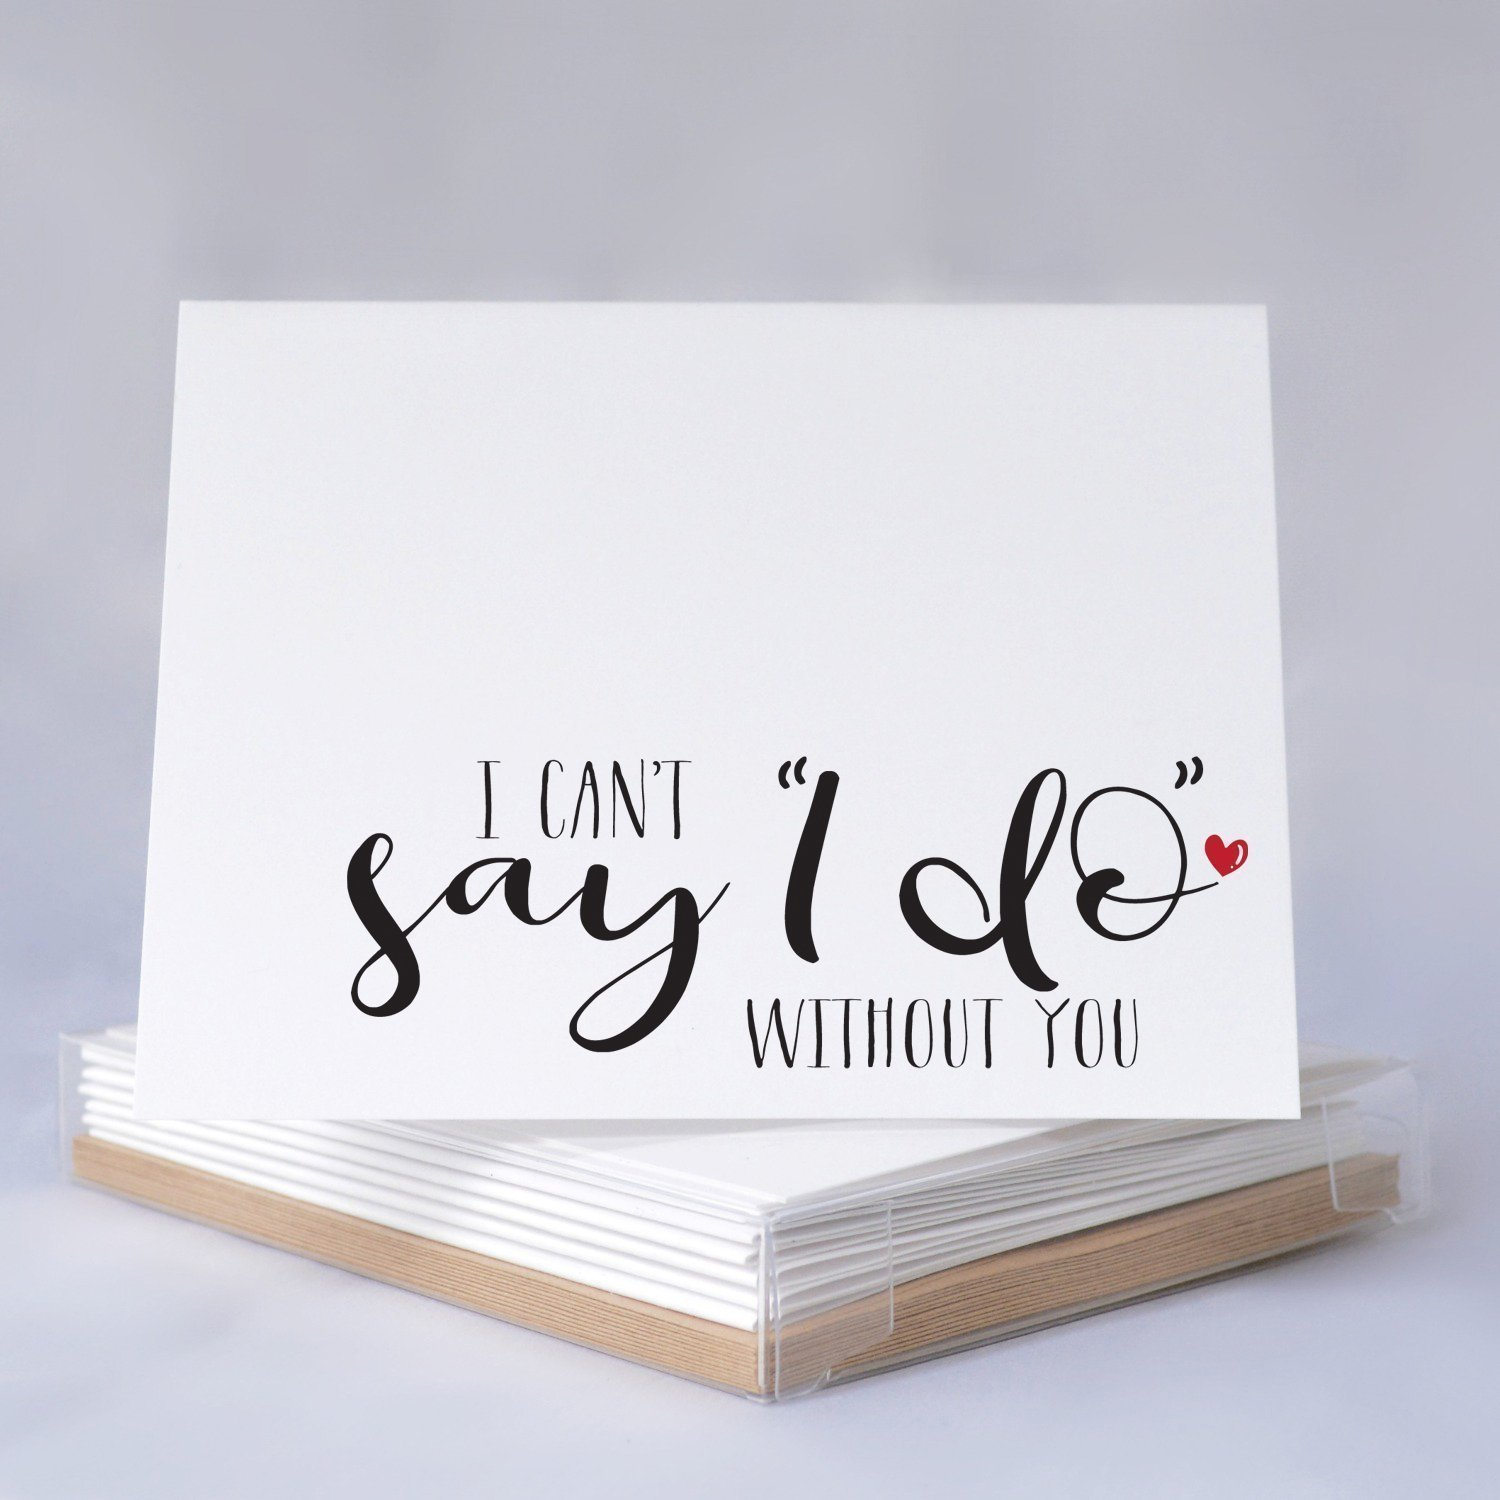 Bridal Party Ask Card Boxed Set - I Can't Say I Do Without You